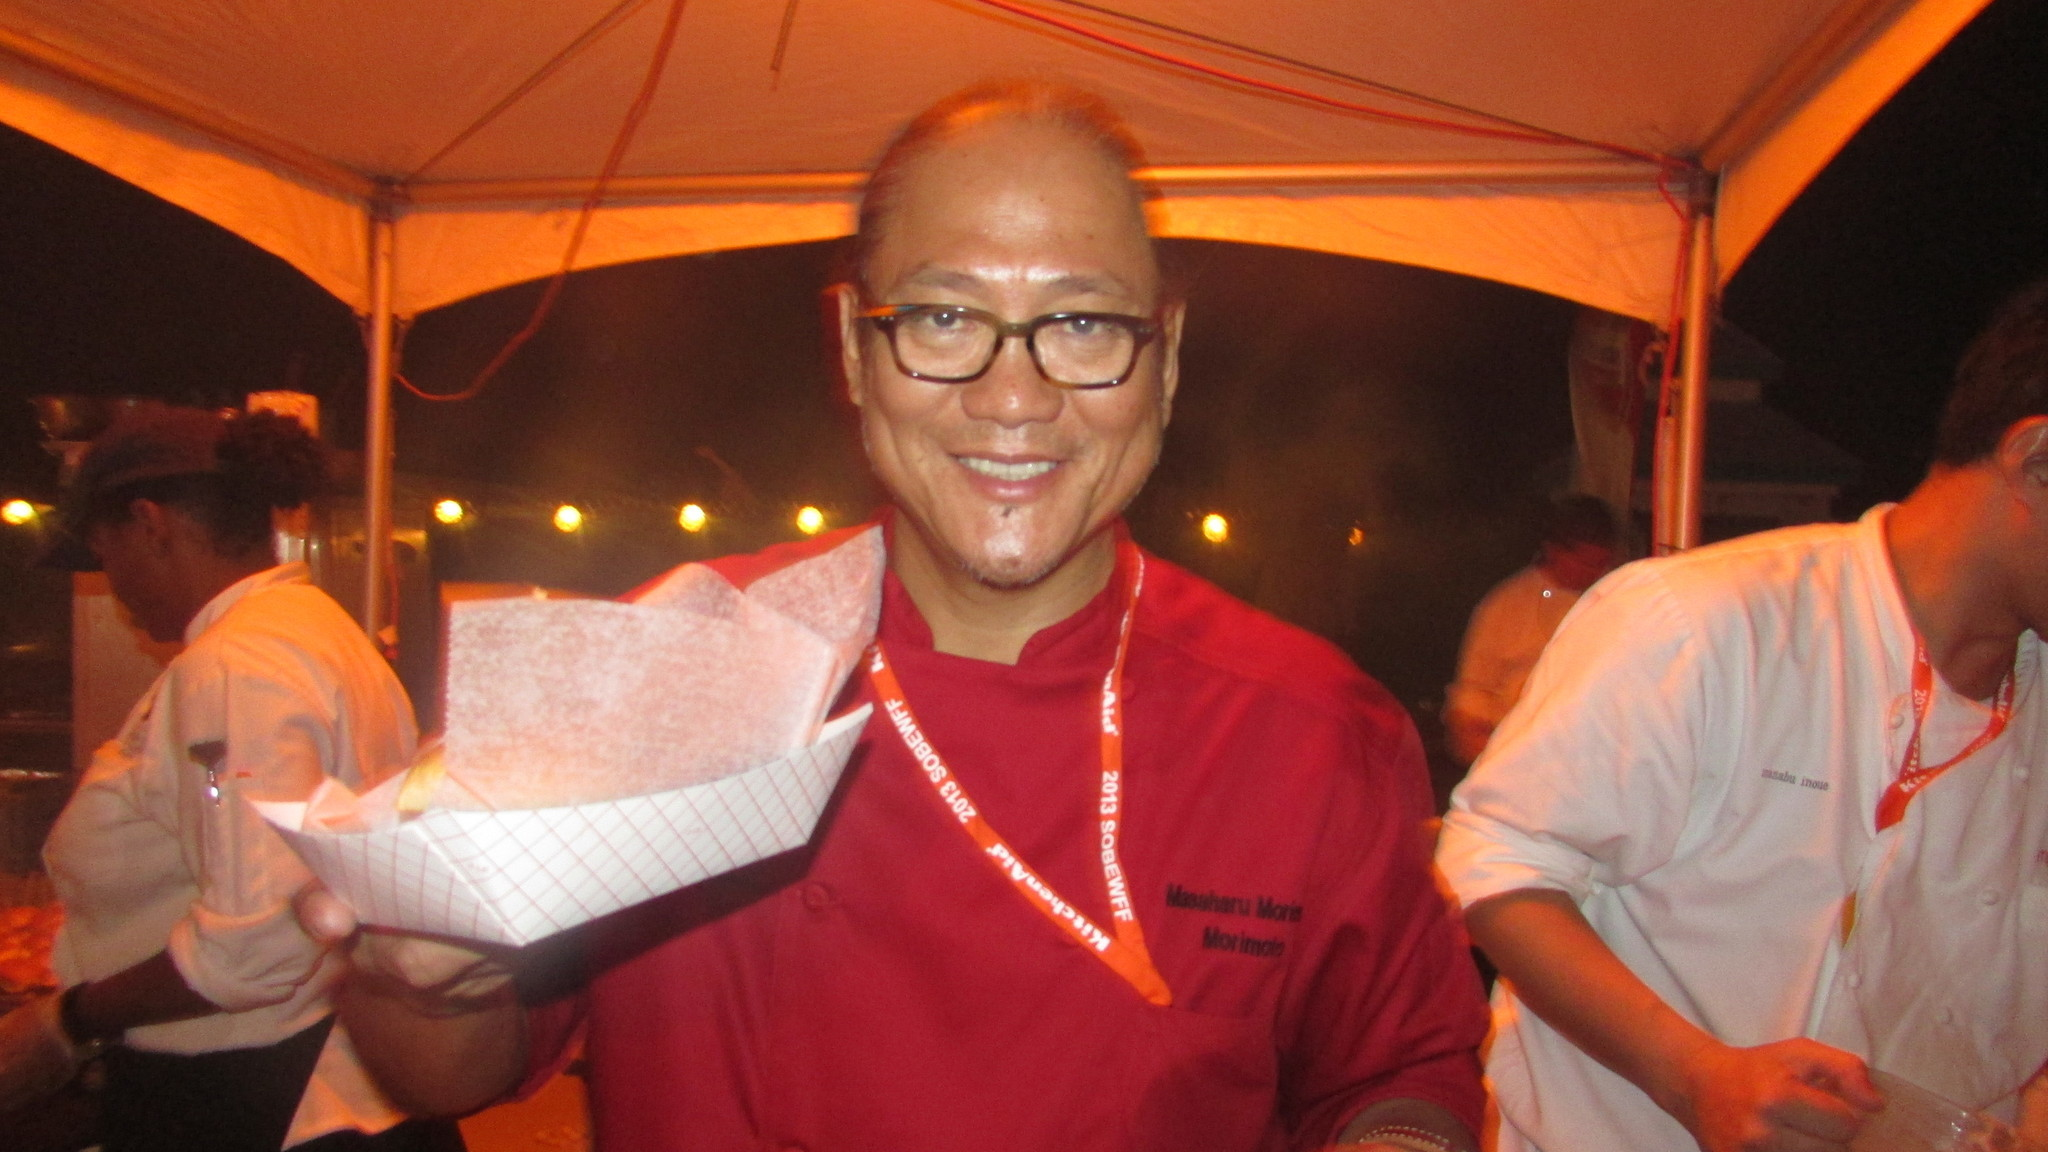 Celeb-spotting around South Florida - Chef Morimoto at Amstel Light Burger Bash